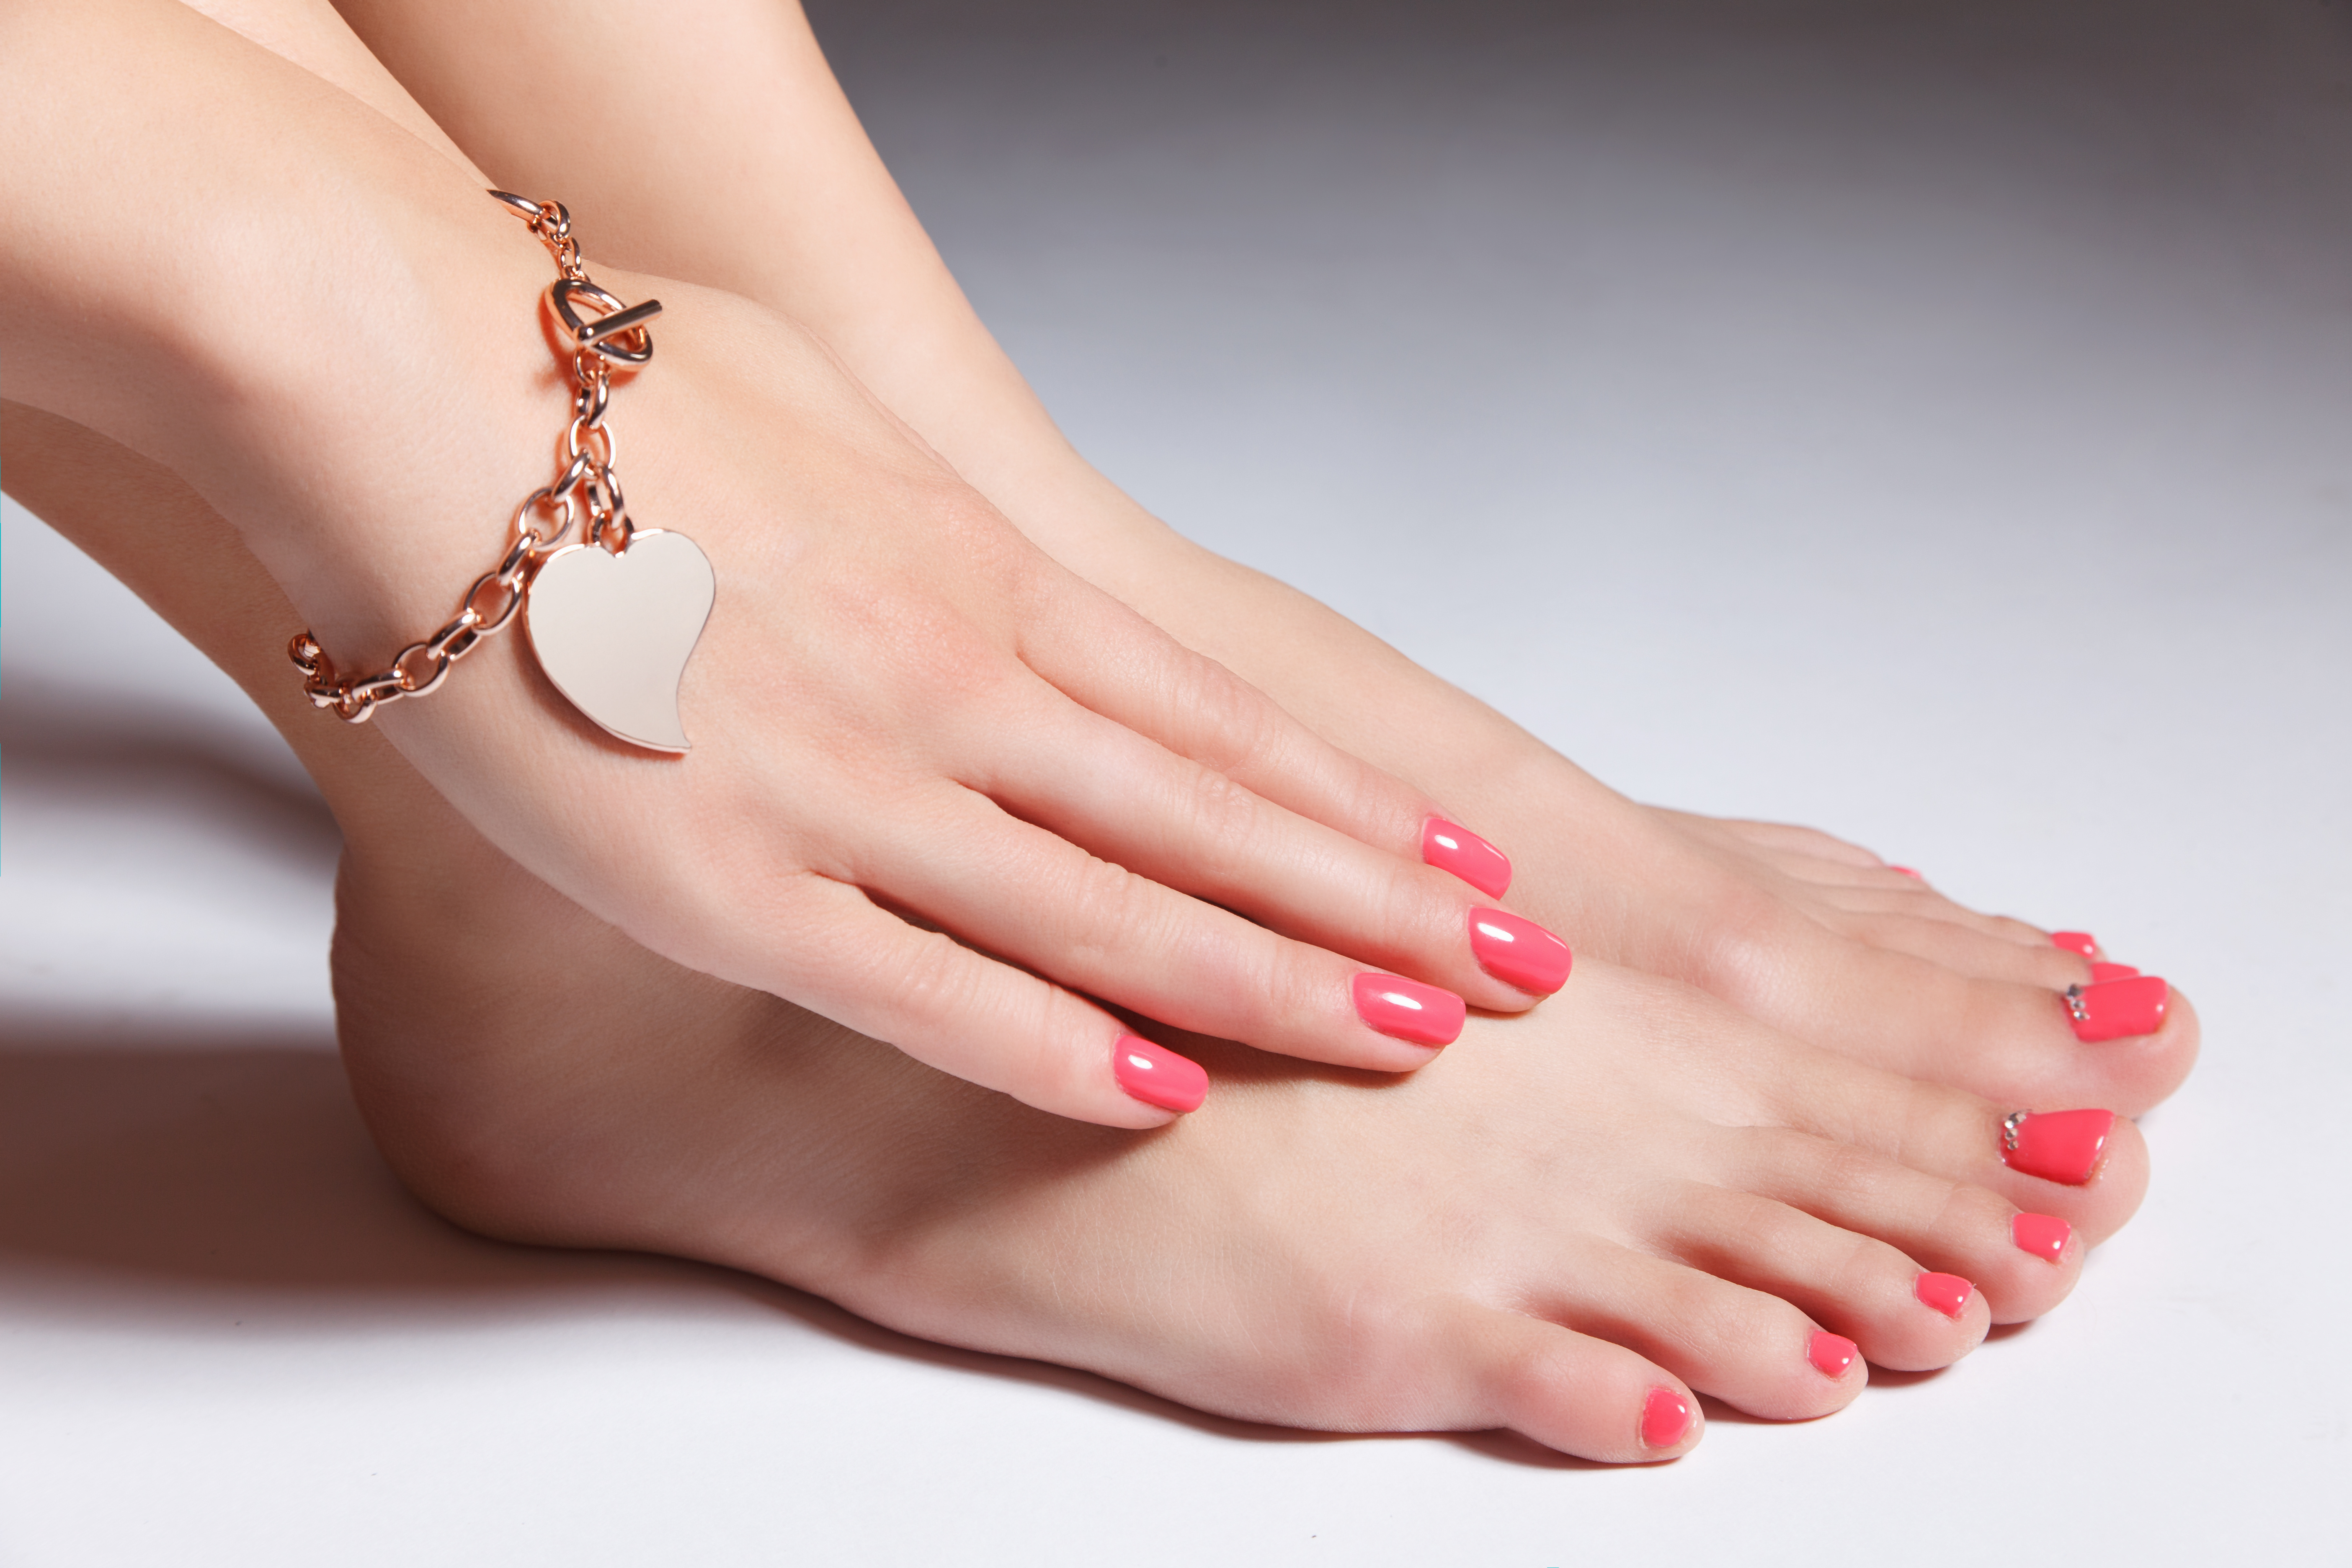 https://0901.nccdn.net/4_2/000/000/001/17f/Canva---Manicured-nails-and-pedicured-toes-with-gel-polish-5616x3744.jpg